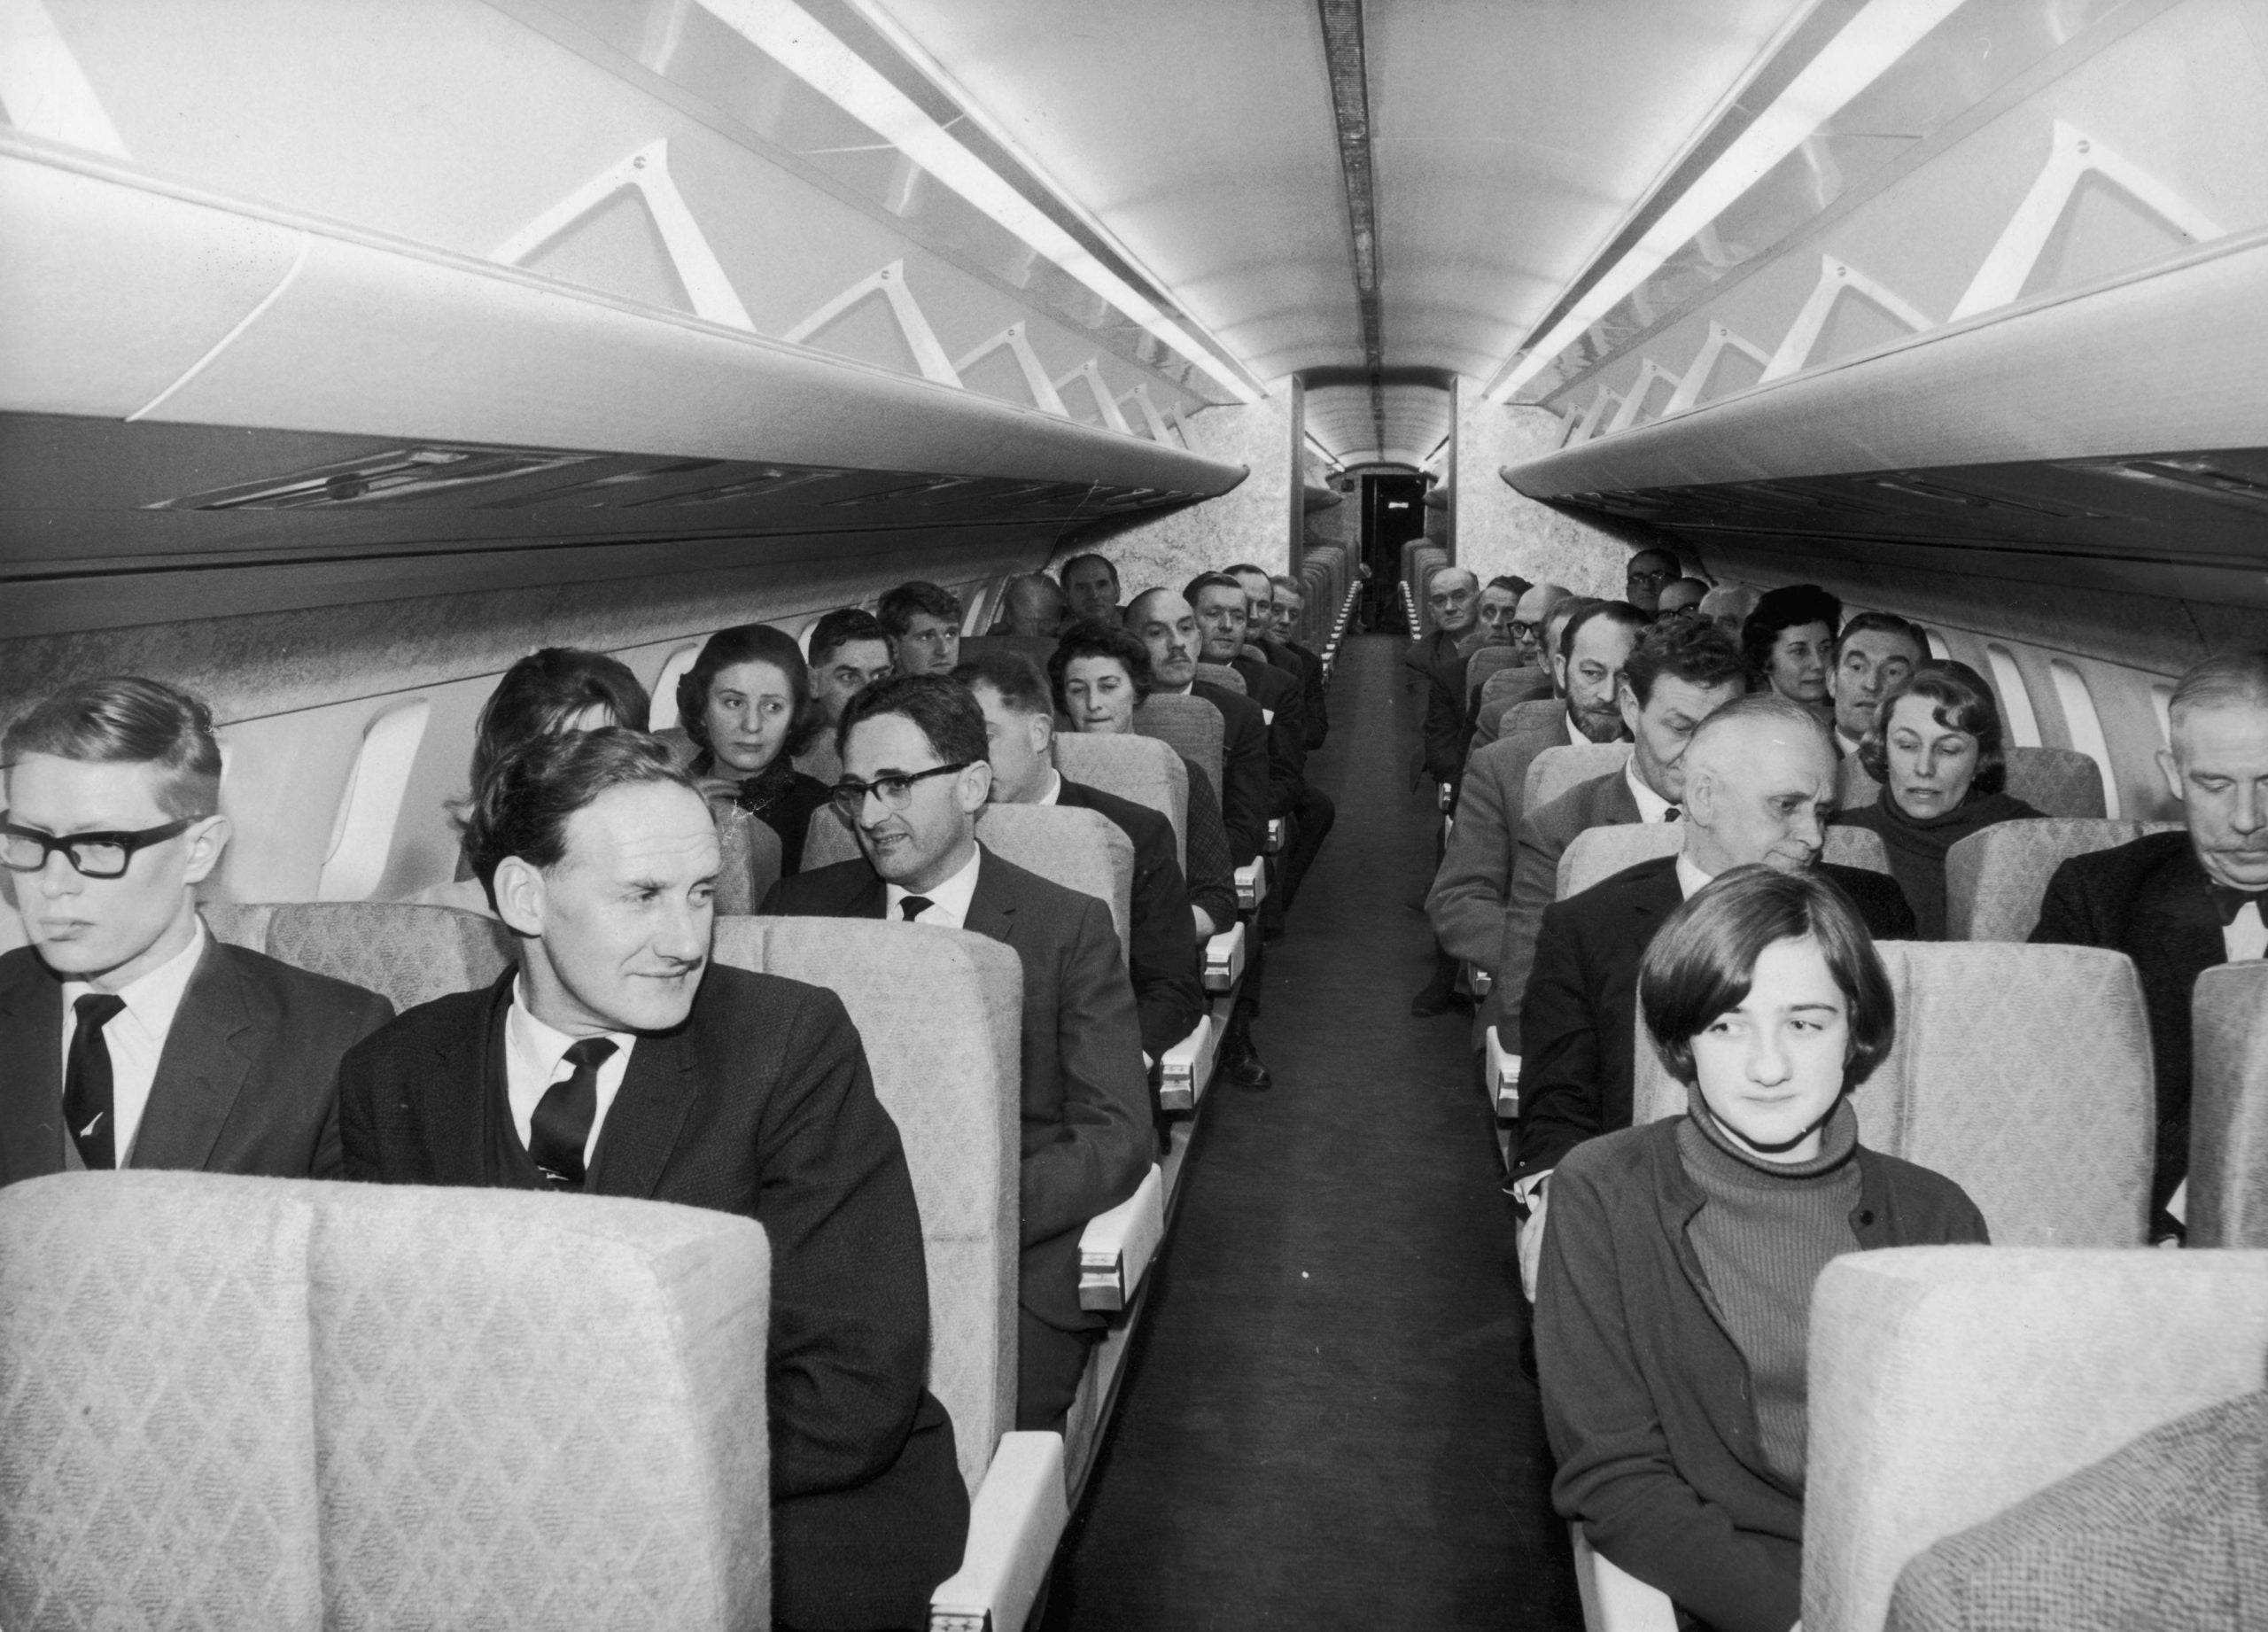 Tears in heaven: Why do we cry on aeroplanes?